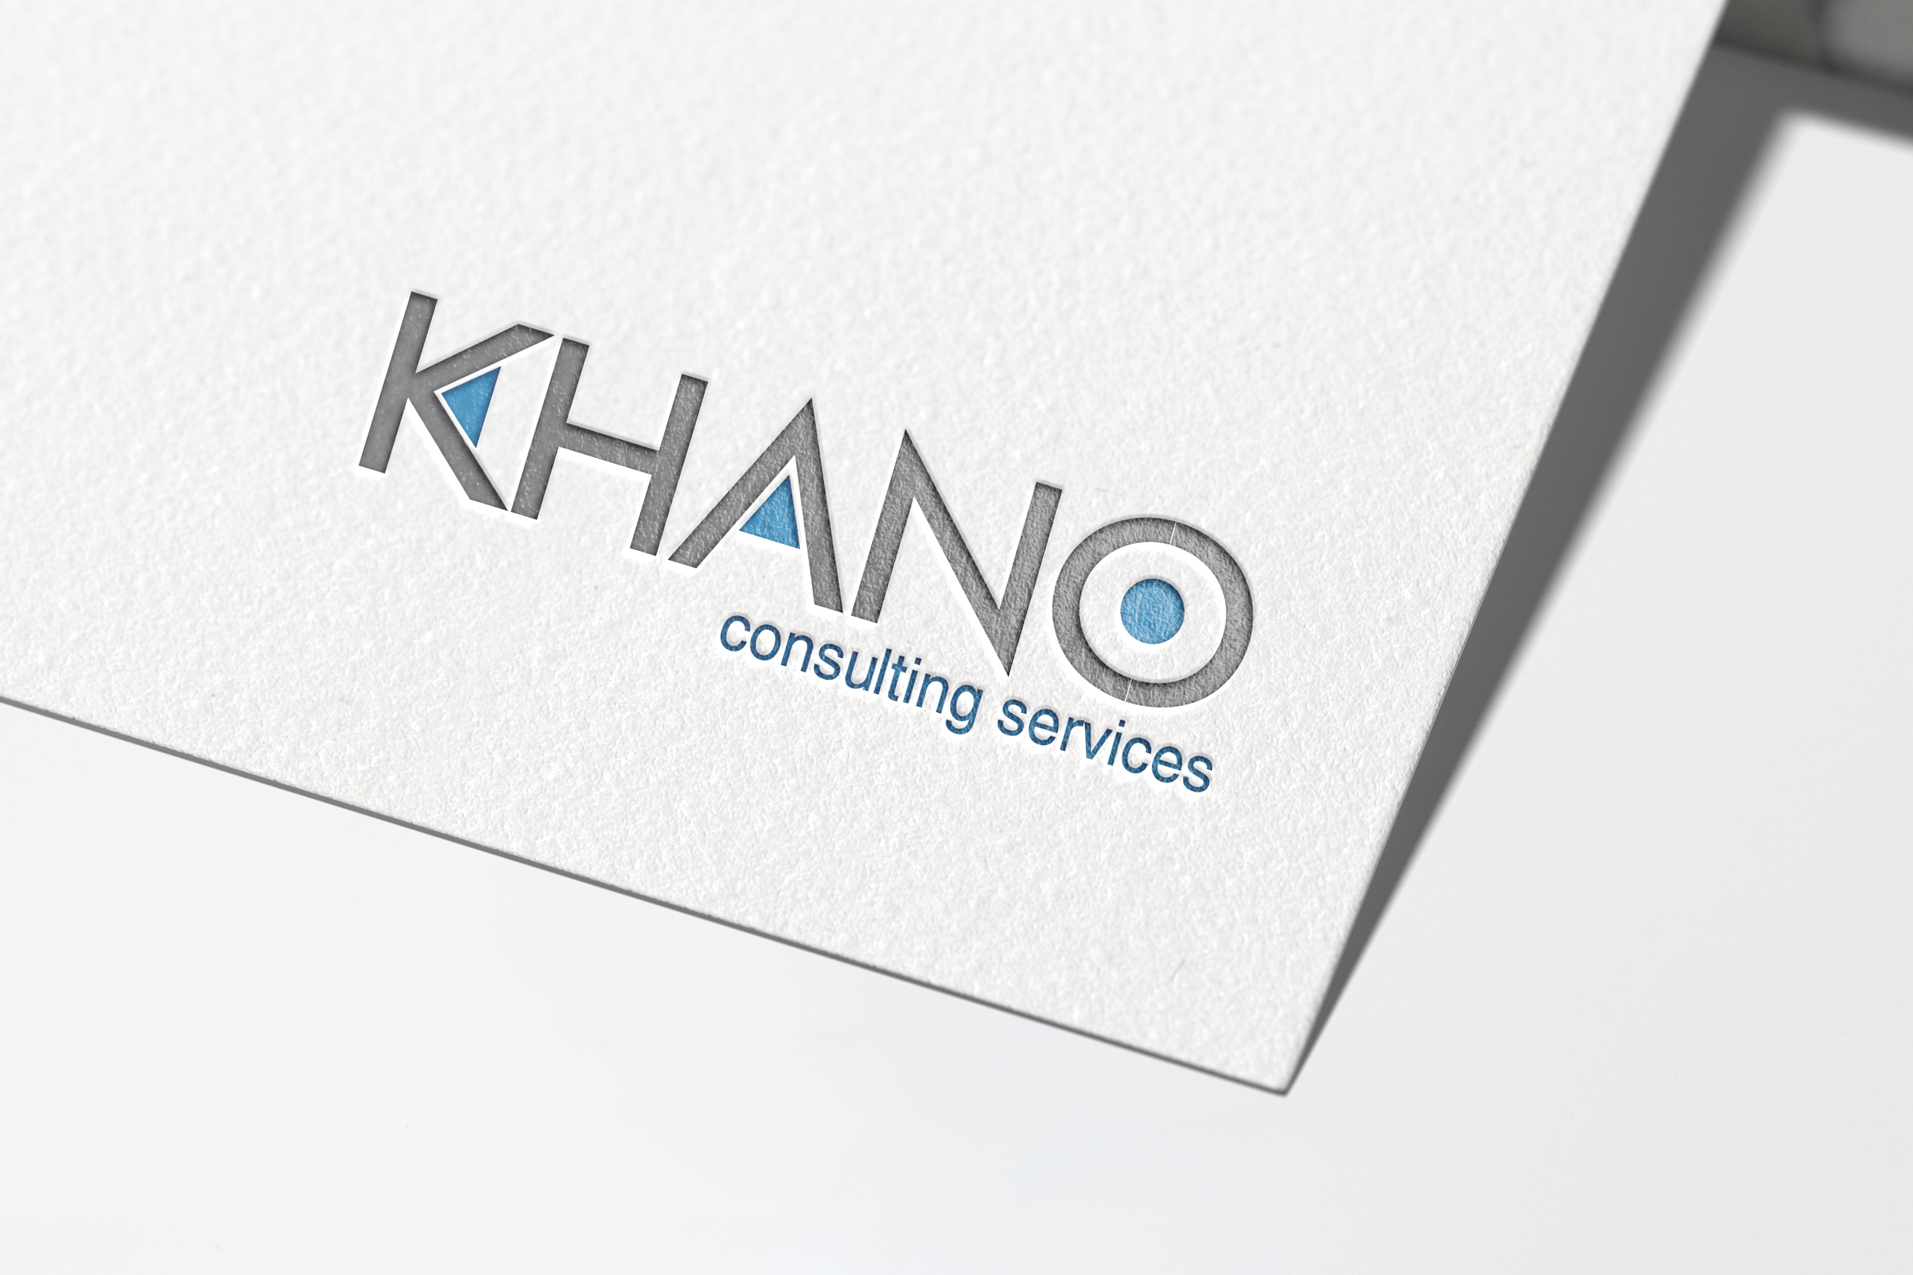 Khano-Consulting-Services-Logo-on-Paper